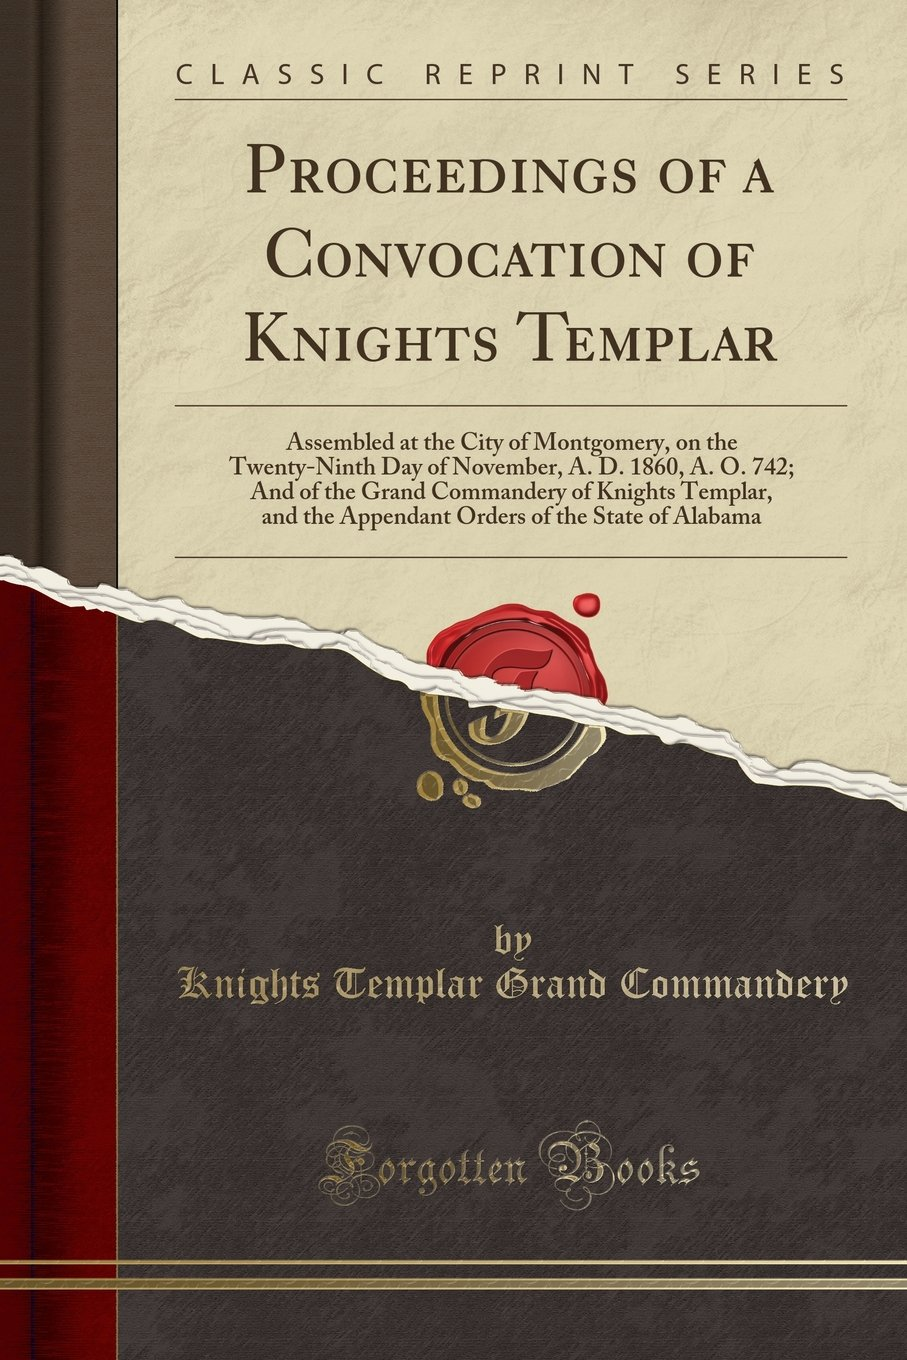 Proceedings of a Convocation of Knights Templar: Assembled at the City of Montgomery, on the Twenty-Ninth Day of November, A. D. 1860, A. O. 742; And ... the Appendant Orders of the State of Alabama pdf